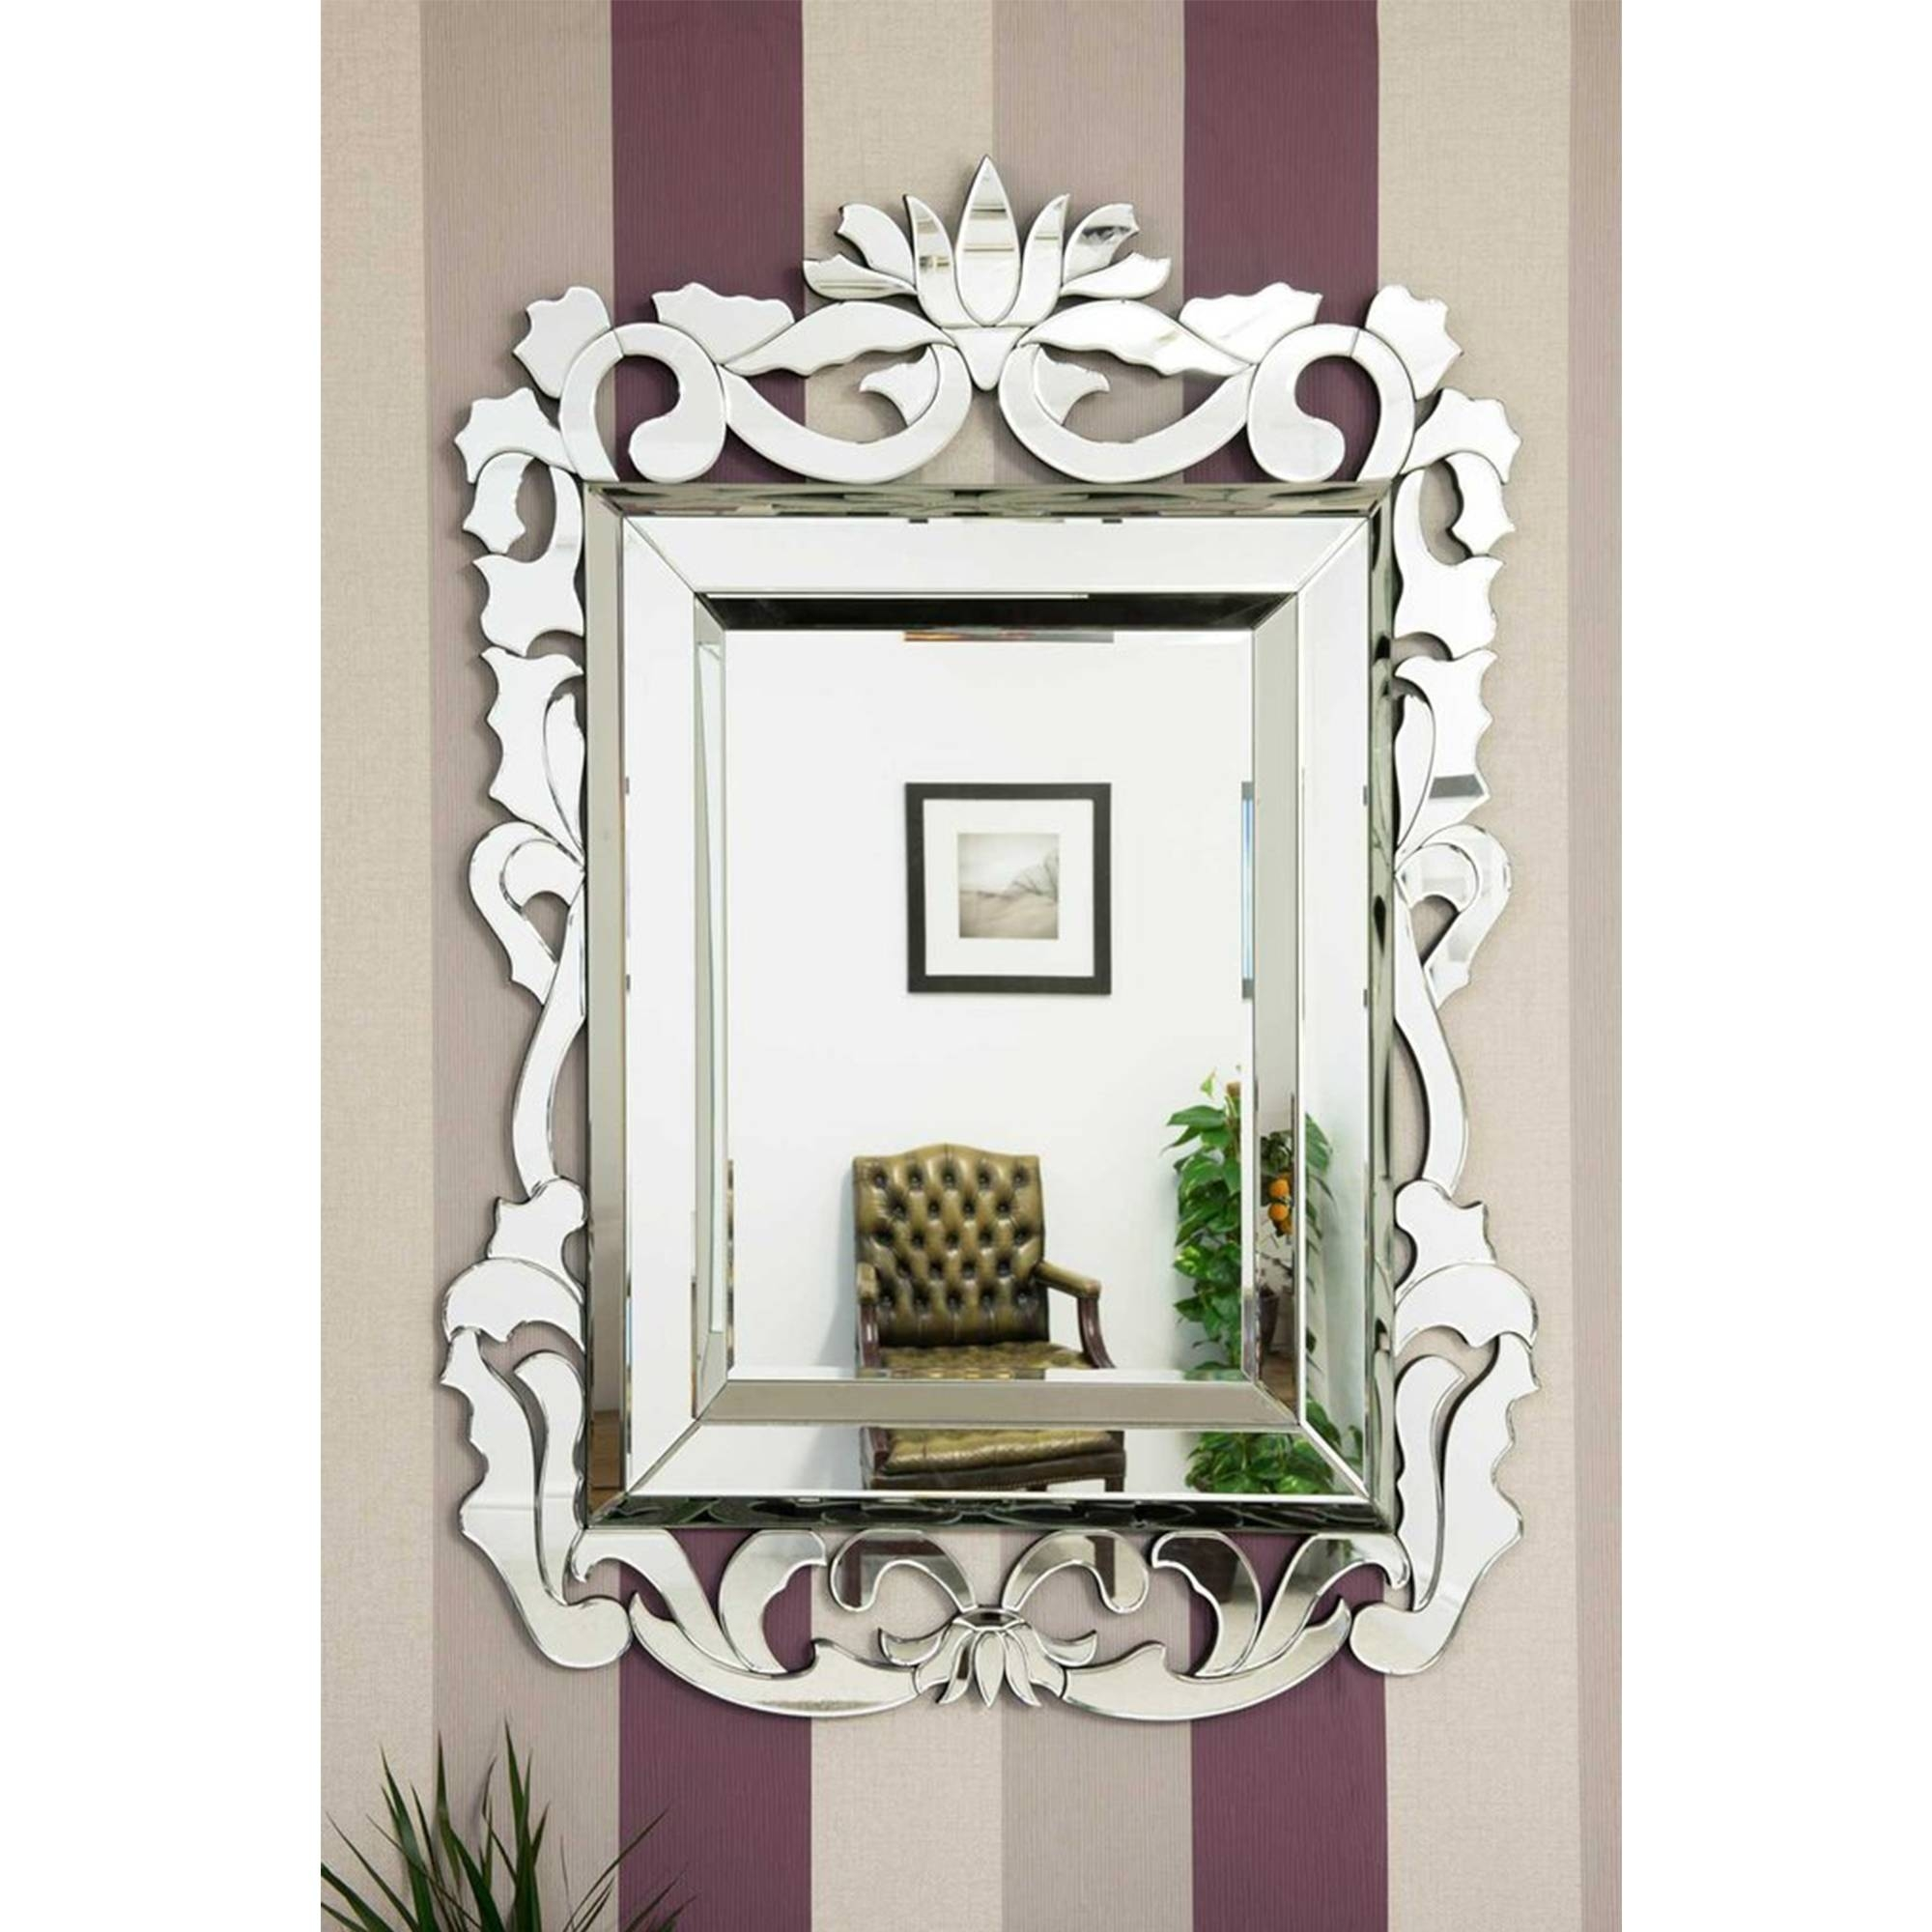 Large Decorative Venetian Mirror | Decorative Glass Mirrors in Large Venetian Mirrors (Image 9 of 25)